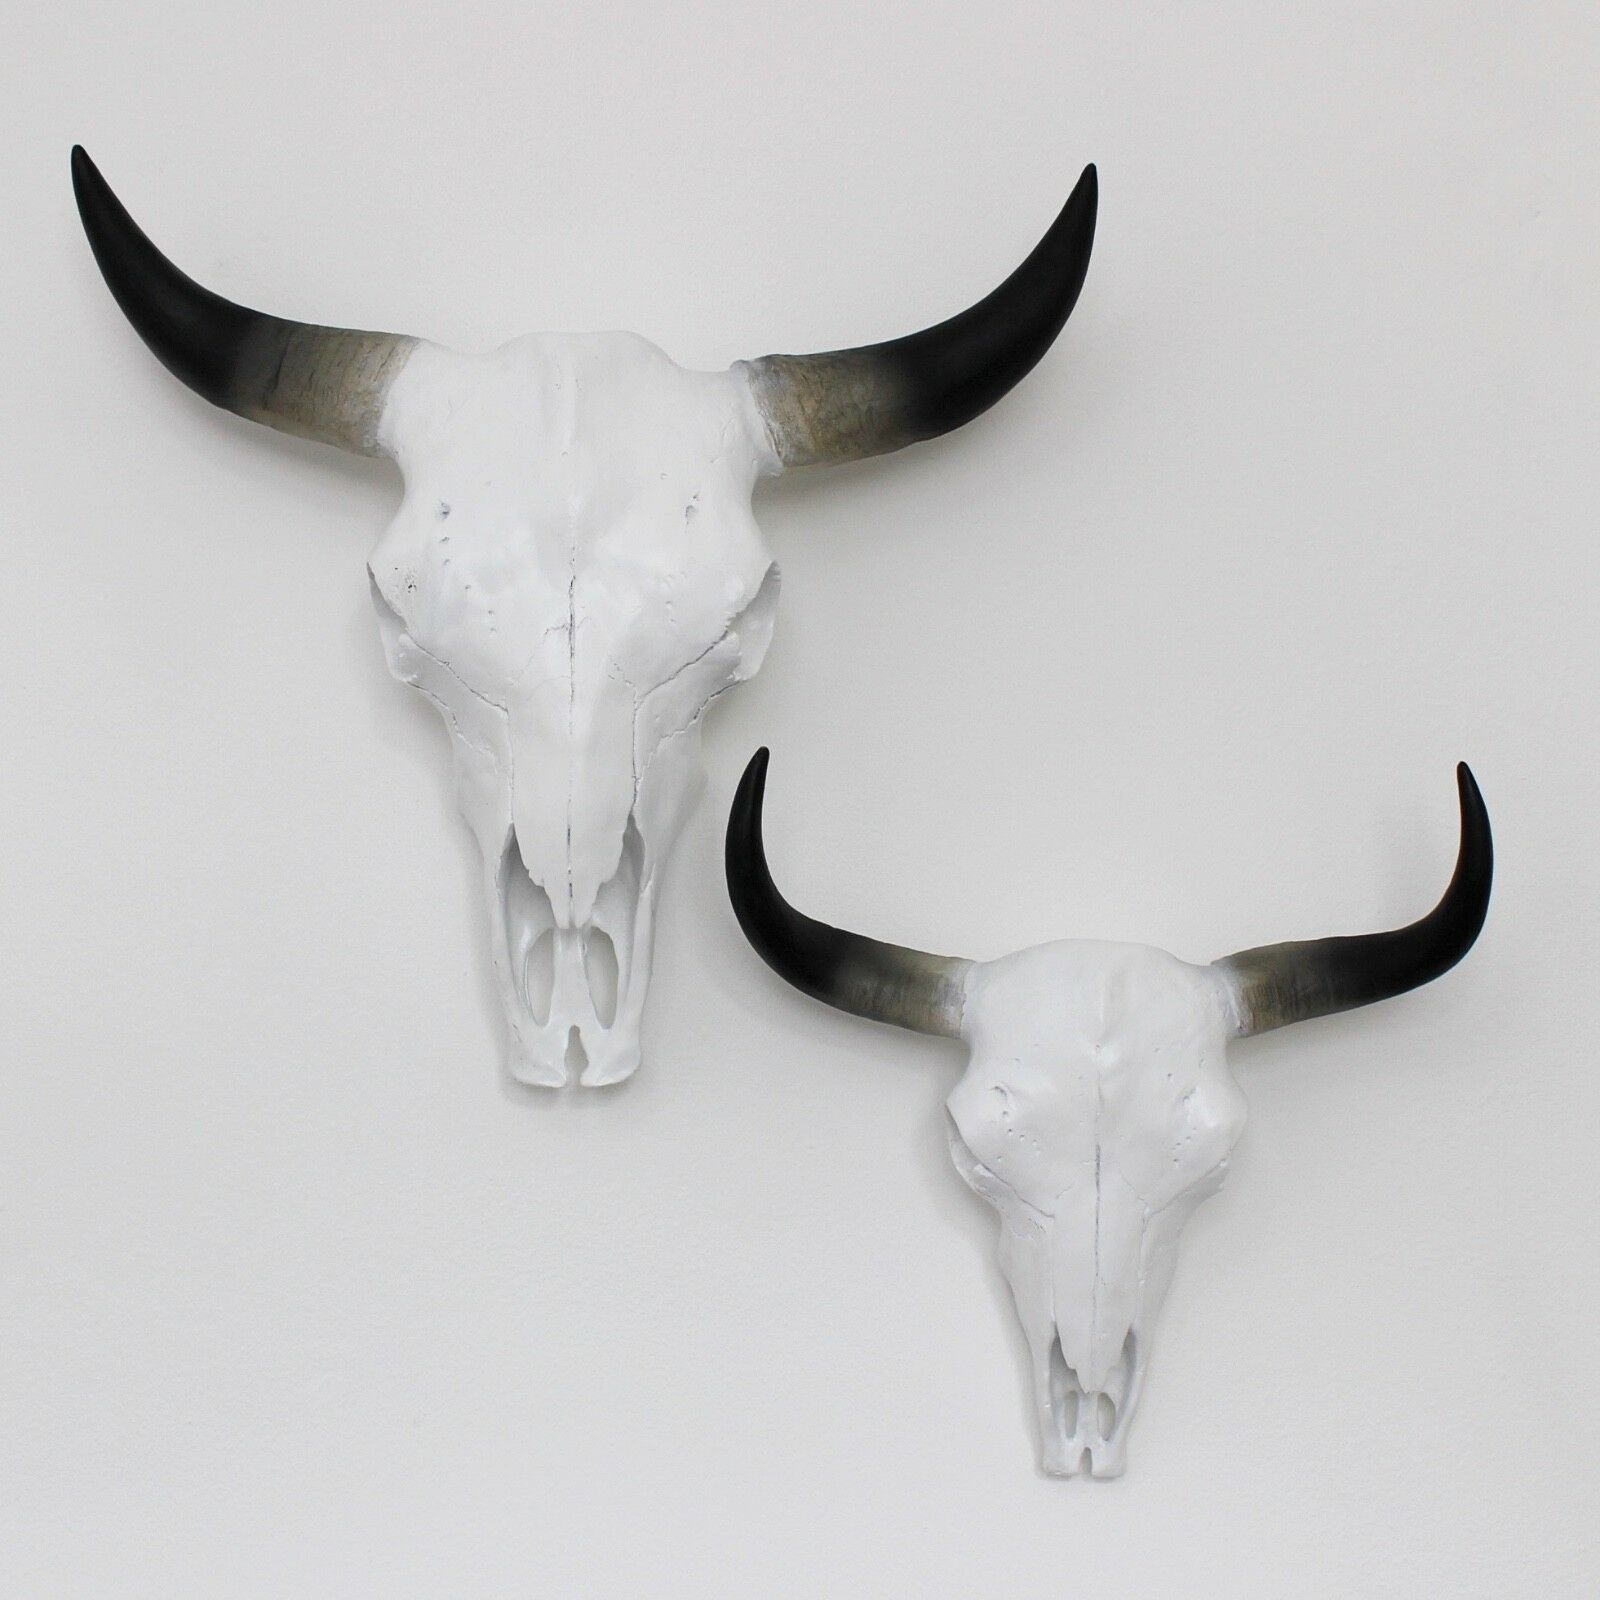 Blanc Synthétique vache Crâne Or Noir Motif 2 Tailles Support Head Mural Steer Bull Horn Head Support 49b600